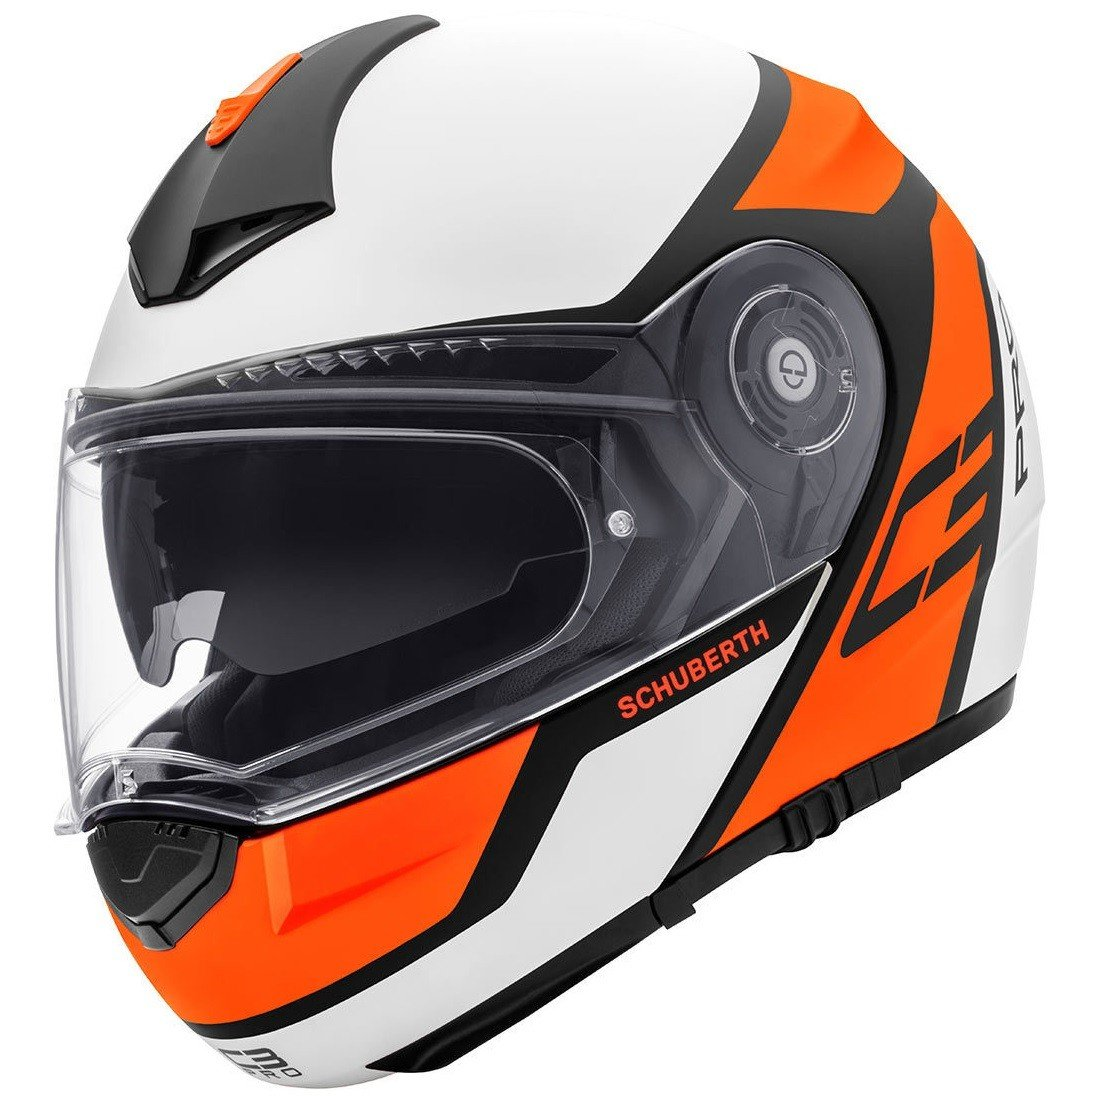 Schuberth C3 Pro Echo orange M (56/57)